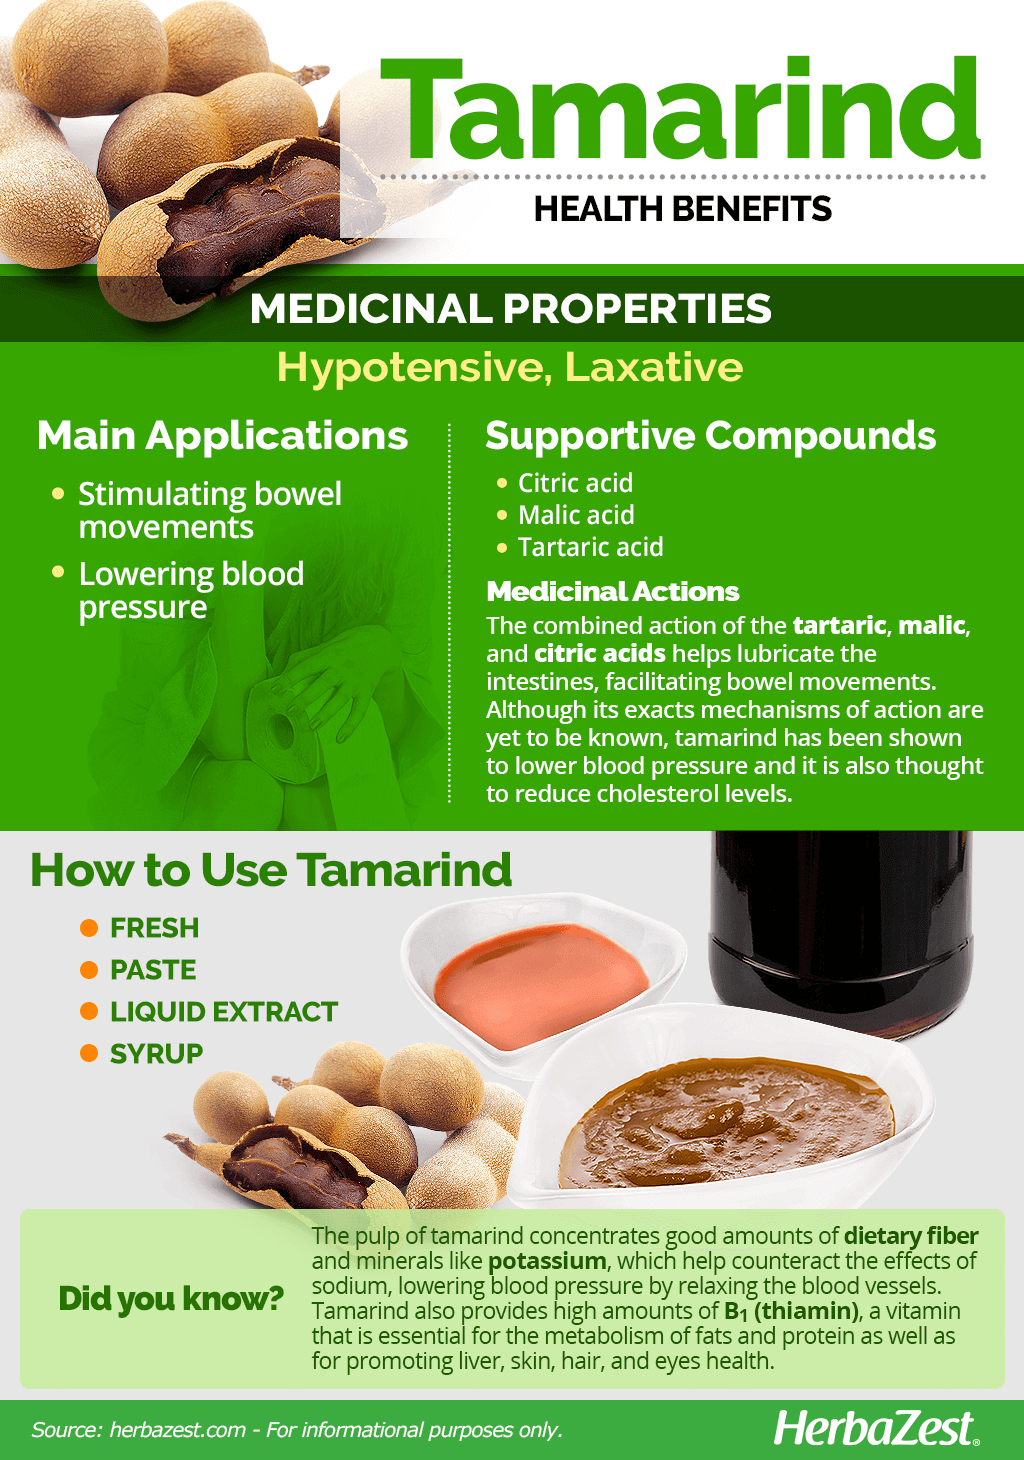 All About Tamarind